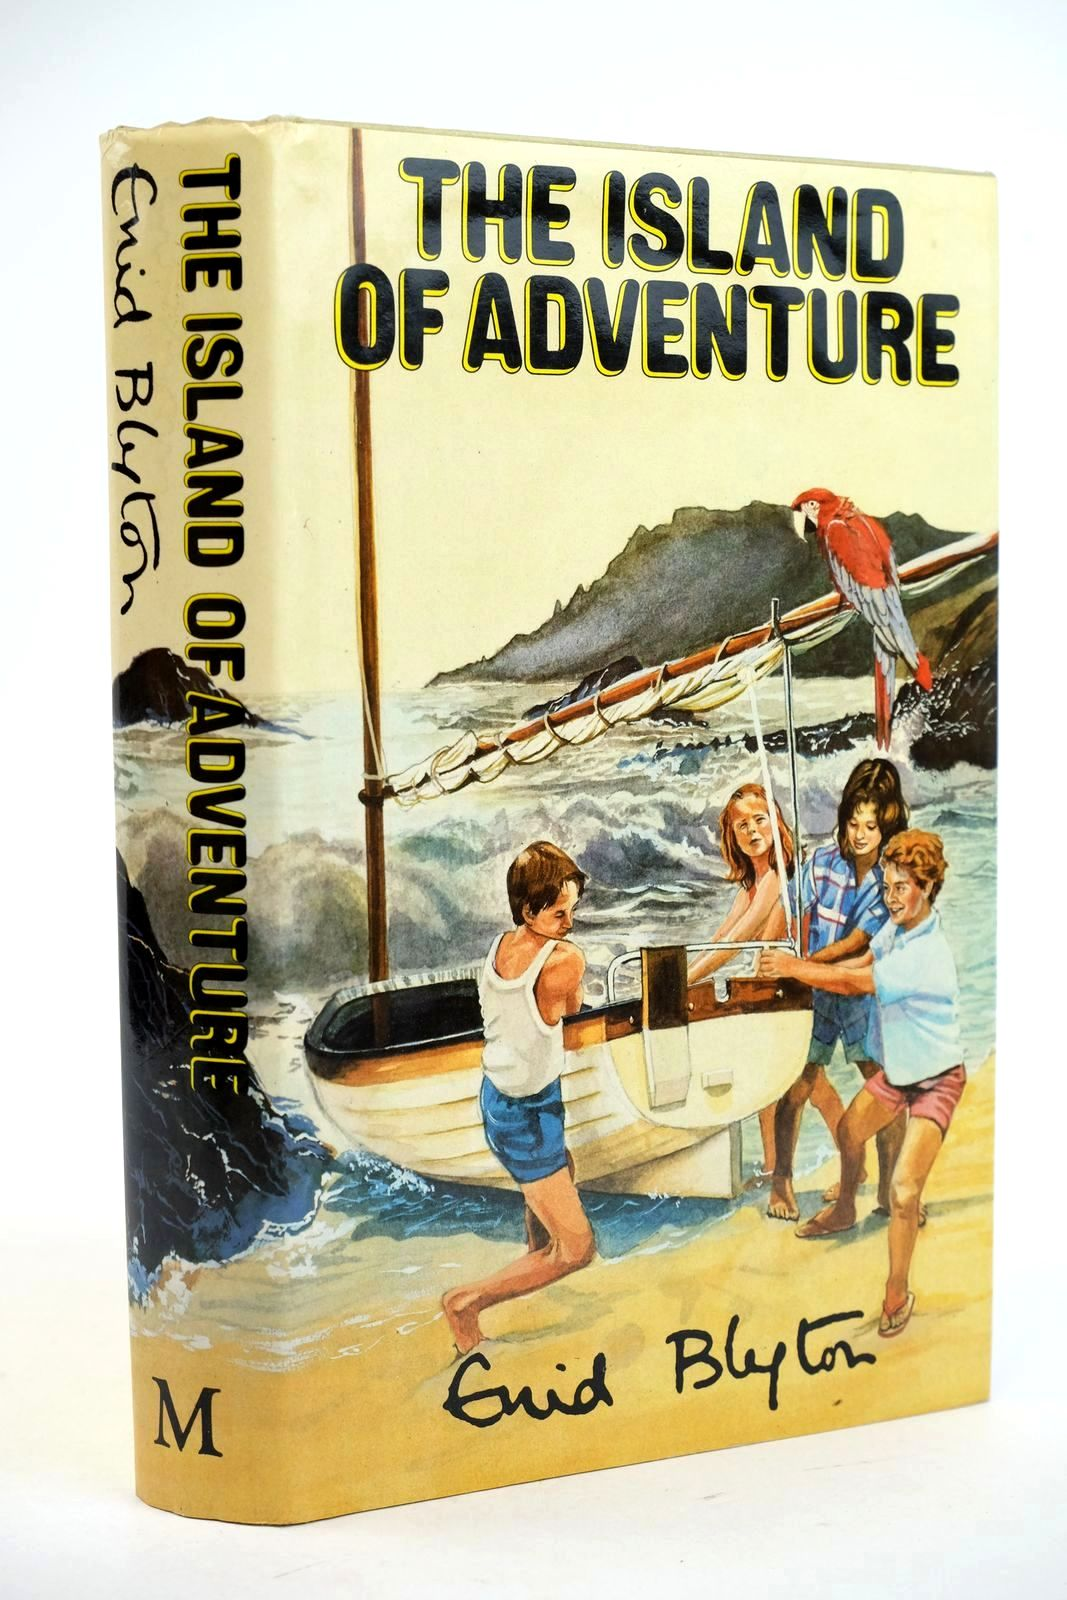 Photo of THE ISLAND OF ADVENTURE written by Blyton, Enid illustrated by Tresilian, Stuart published by Macmillan & Co. Ltd. (STOCK CODE: 1319116)  for sale by Stella & Rose's Books